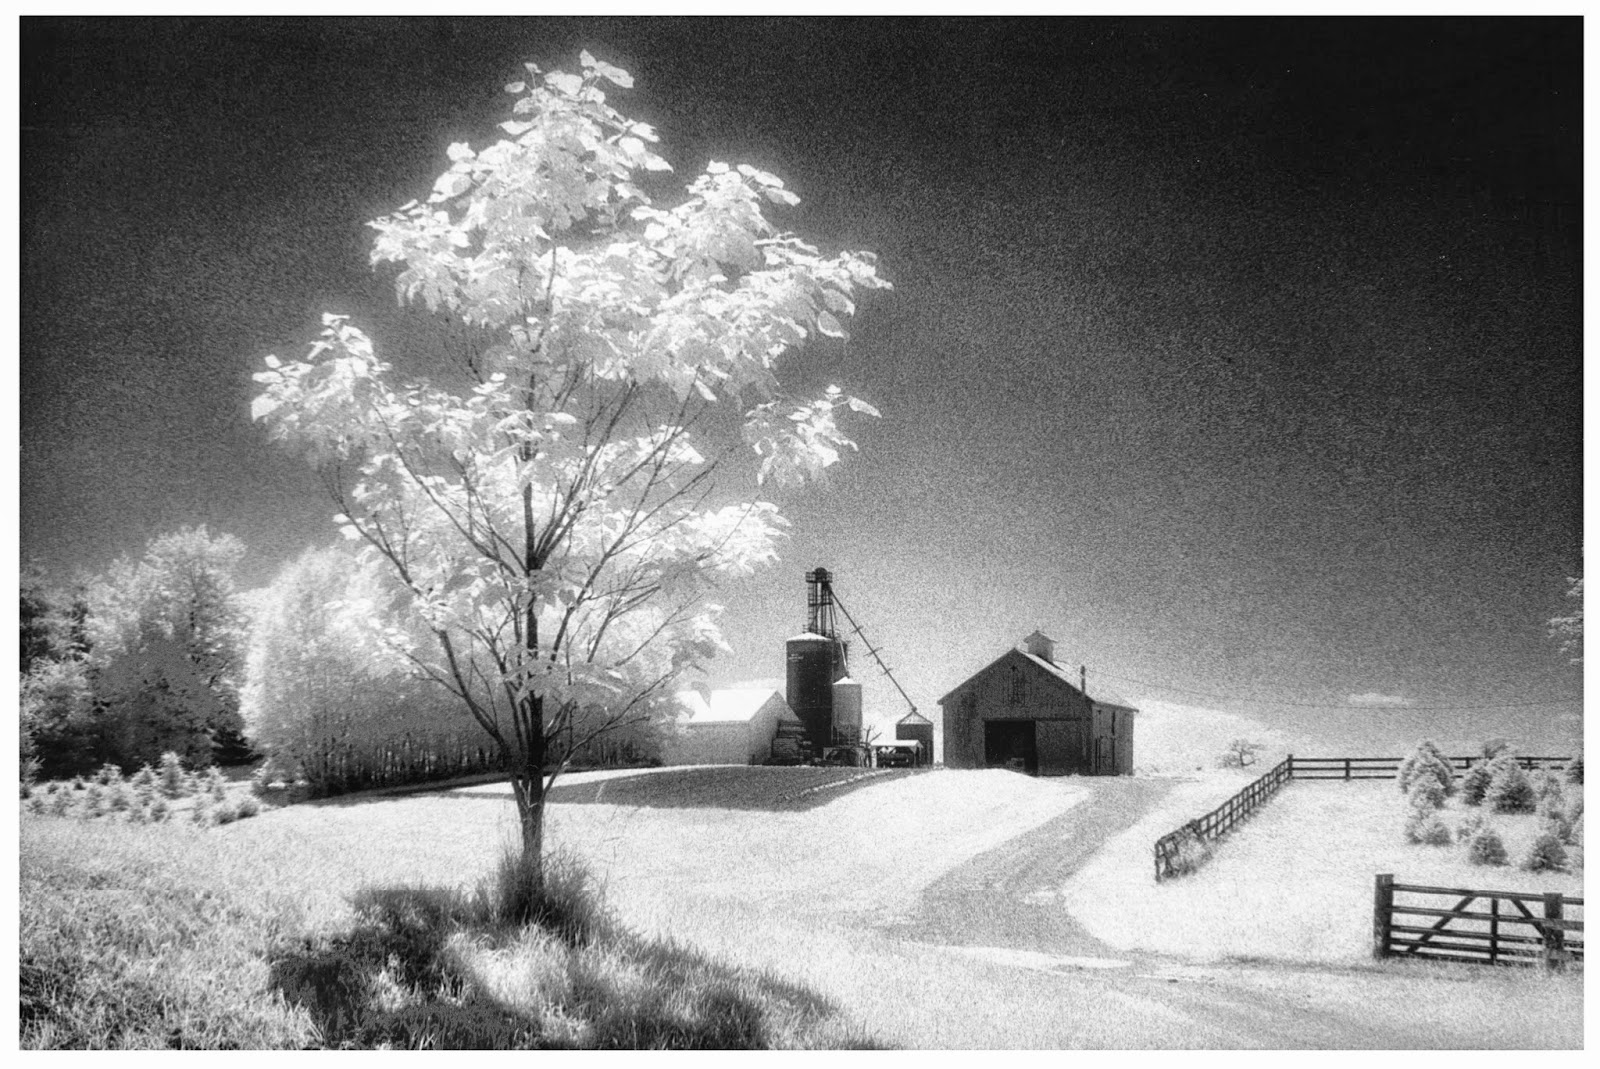 Jim Hill, Photo/Graphic Works: Christmas Tree Farm